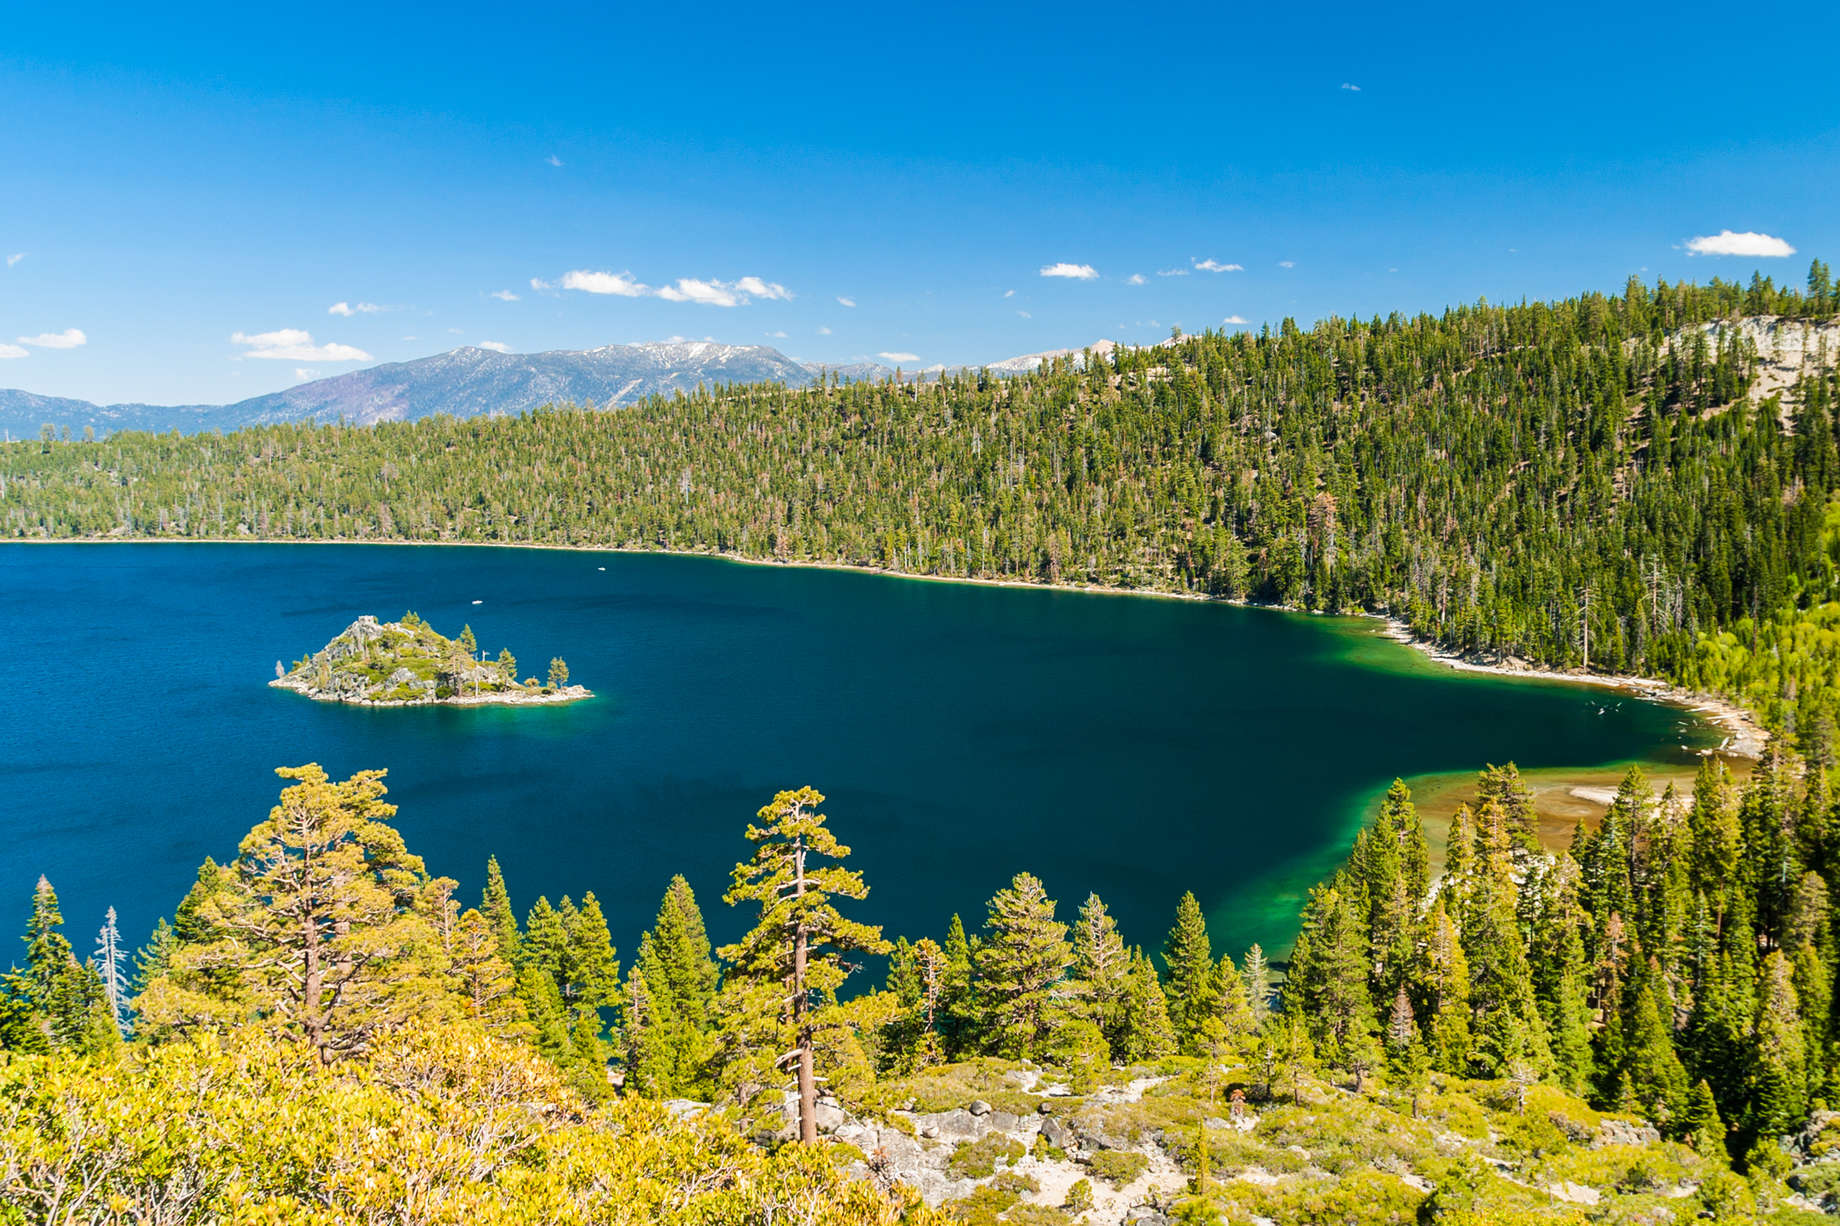 Best Lake Towns in the US: Lakes to Visit for Your Summer